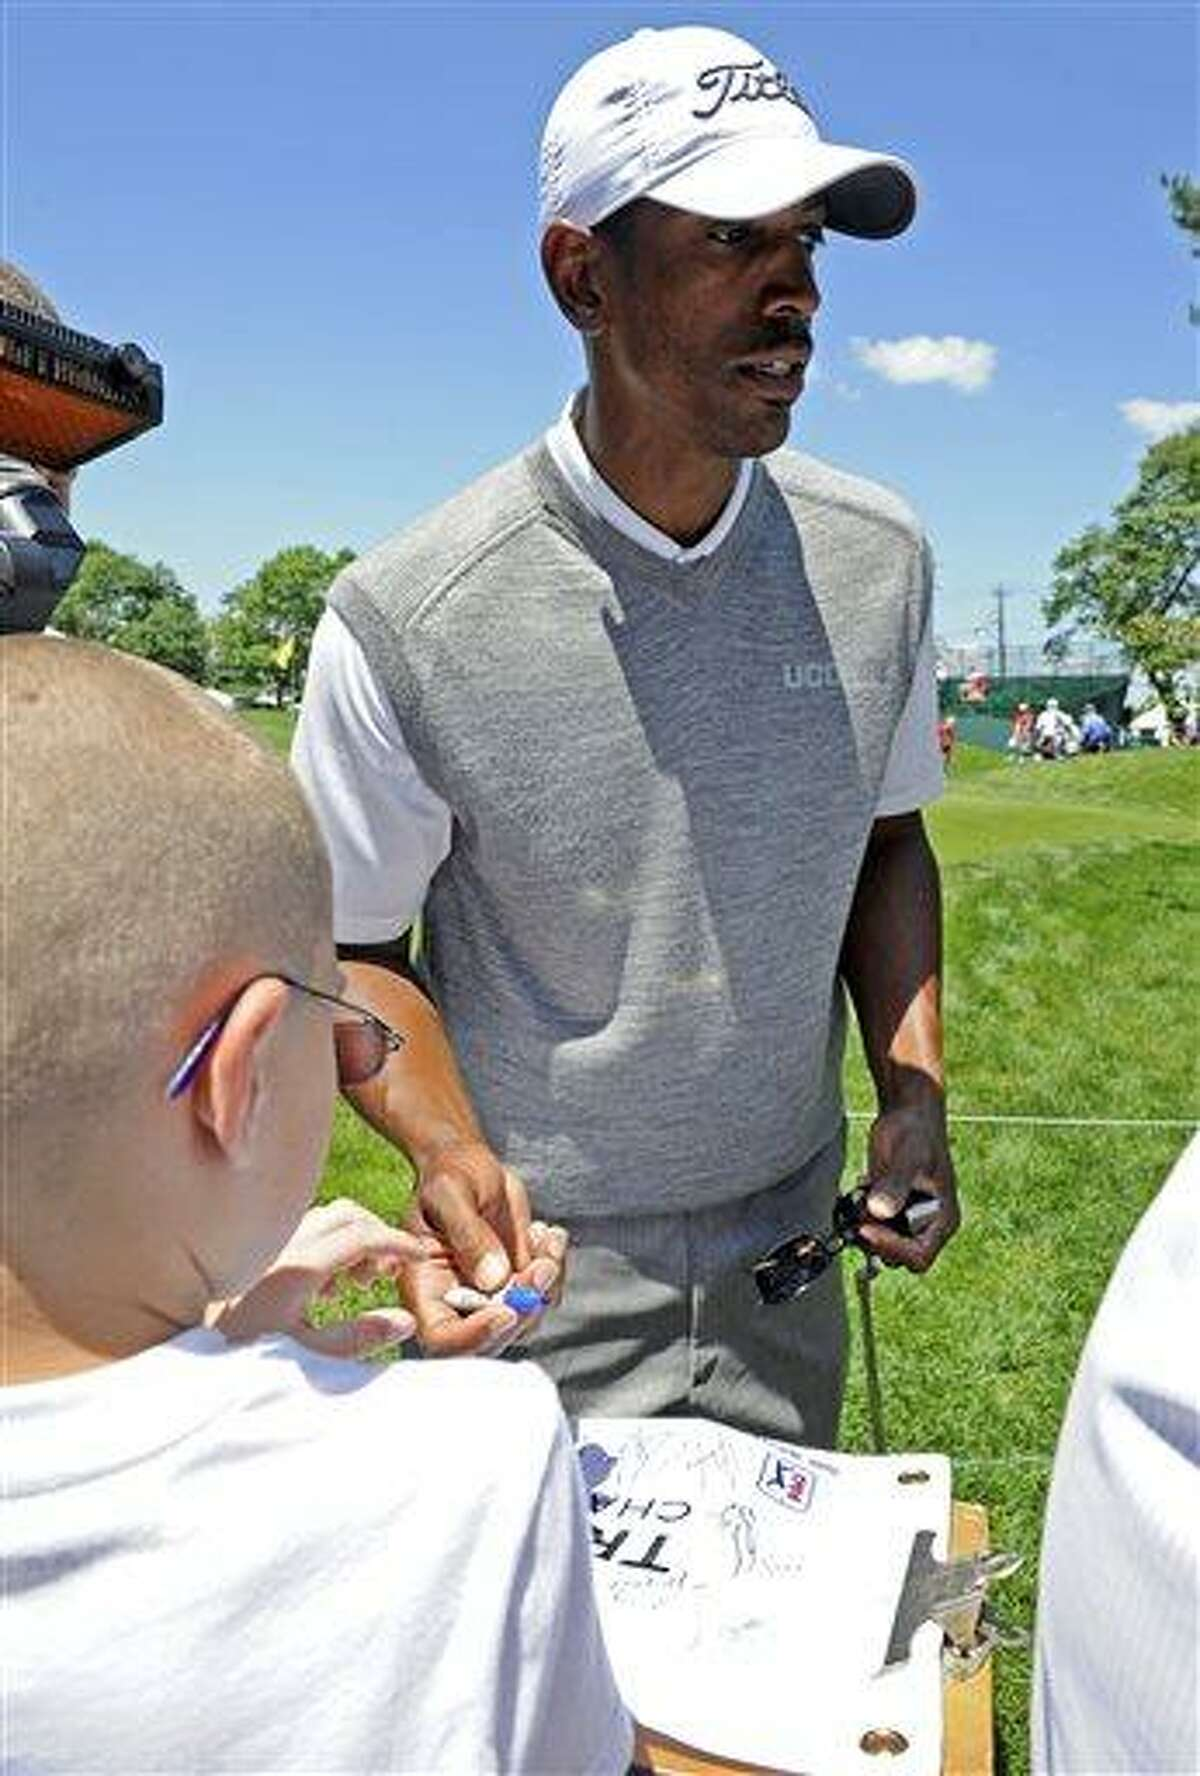 Kevin Ollie, Connecticut men's basketball coach, signs autographs after completing his round in the pro-am at the Travelers Championship golf tournament in Cromwell, Conn., Wednesday, June 19, 2013. (AP Photo/Fred Beckham)